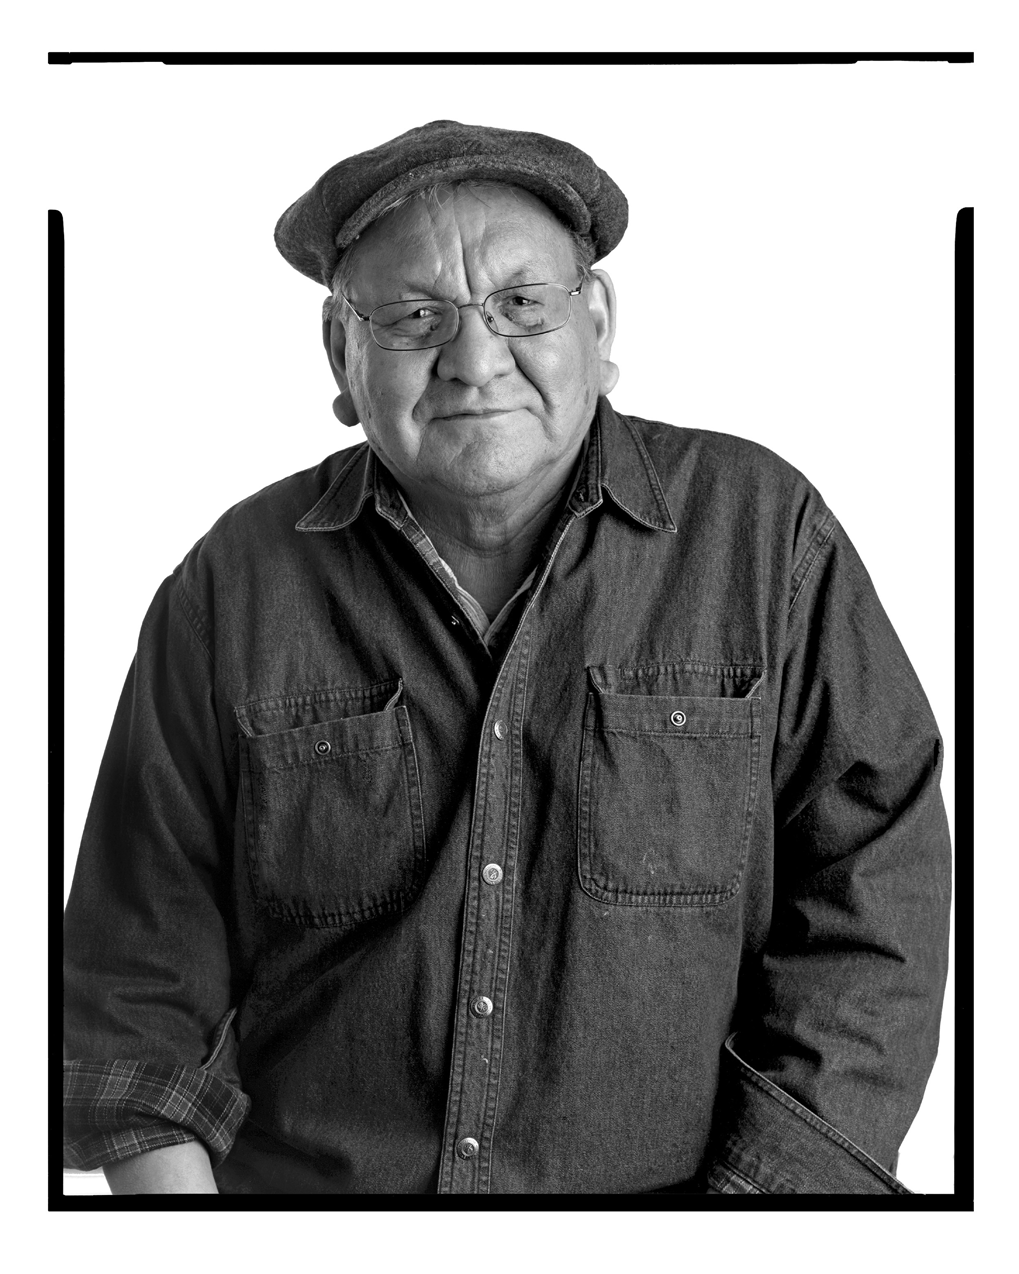 Facing the Camera: Alex Janvier, Shelley Niro, Ron Noganosh, Jeff Thomas Artist Rosalie Favell Year 2008-2011 Medium Black and white photograph  Collection of the Canada Council Art Bank